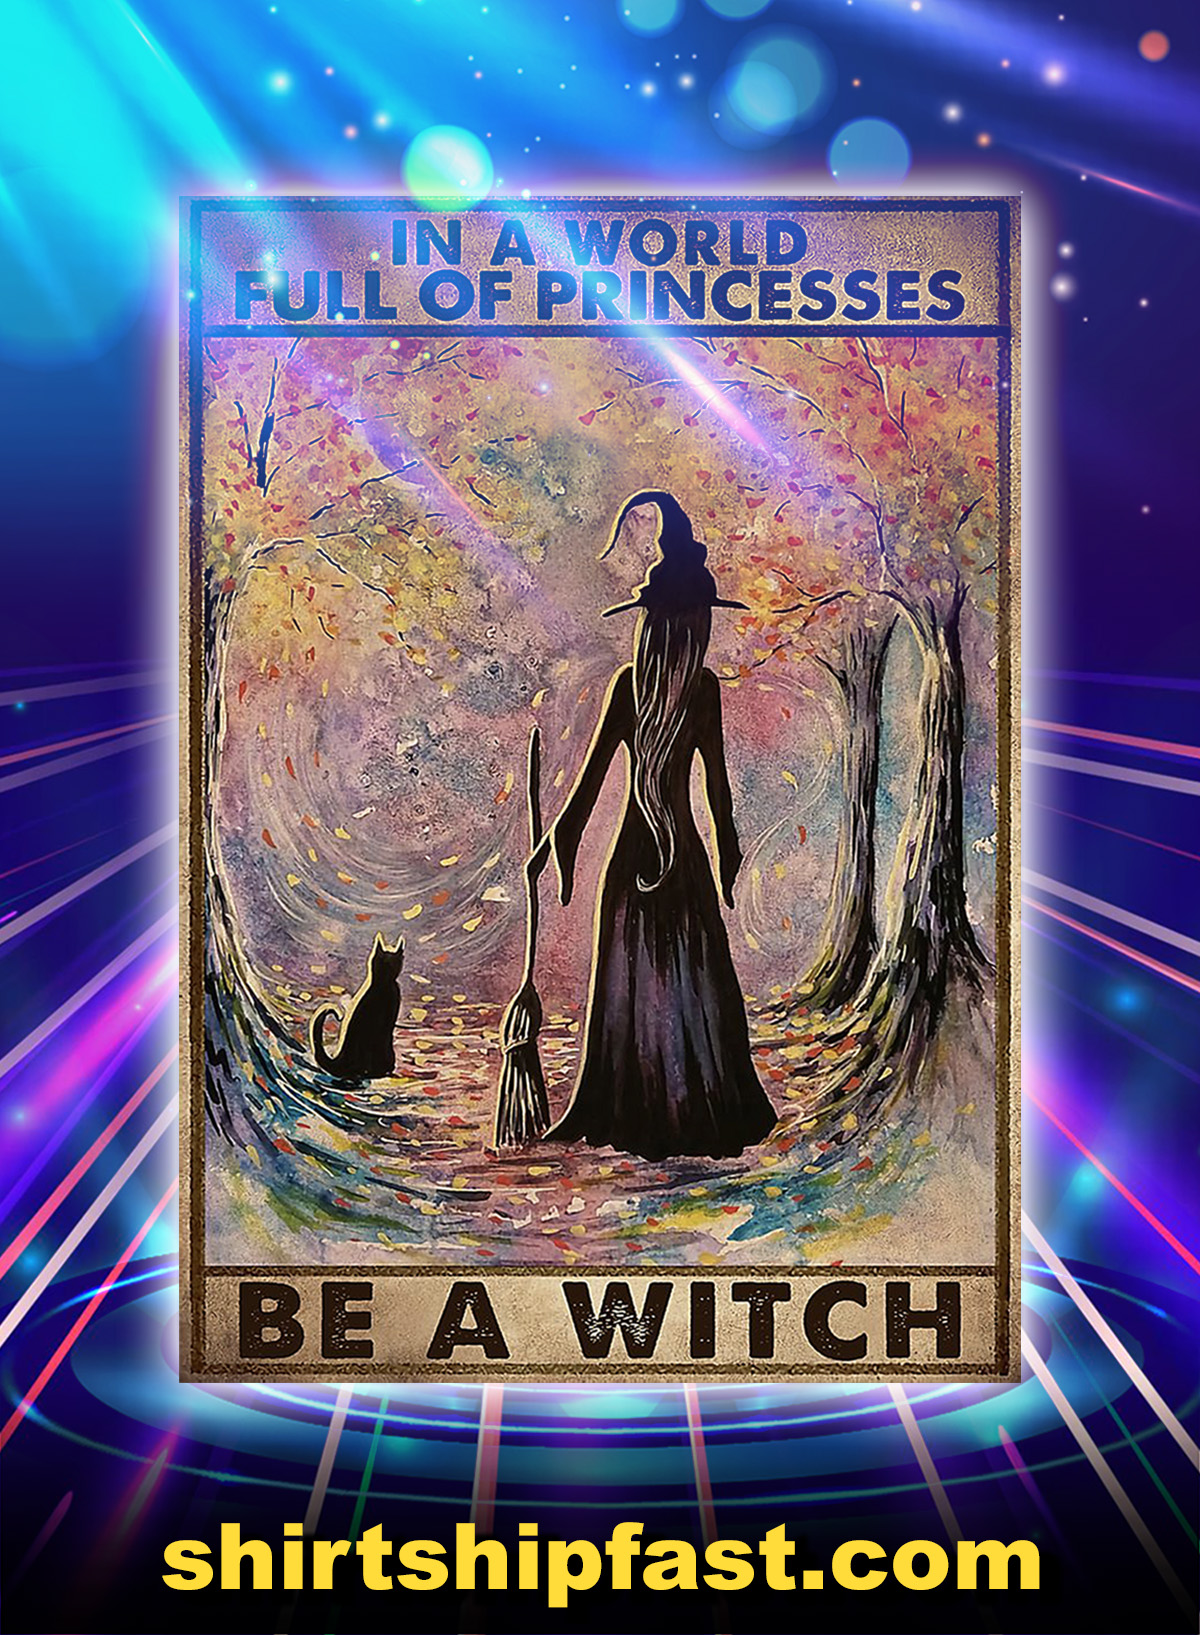 In a world full of princesses be a witch poster - A1